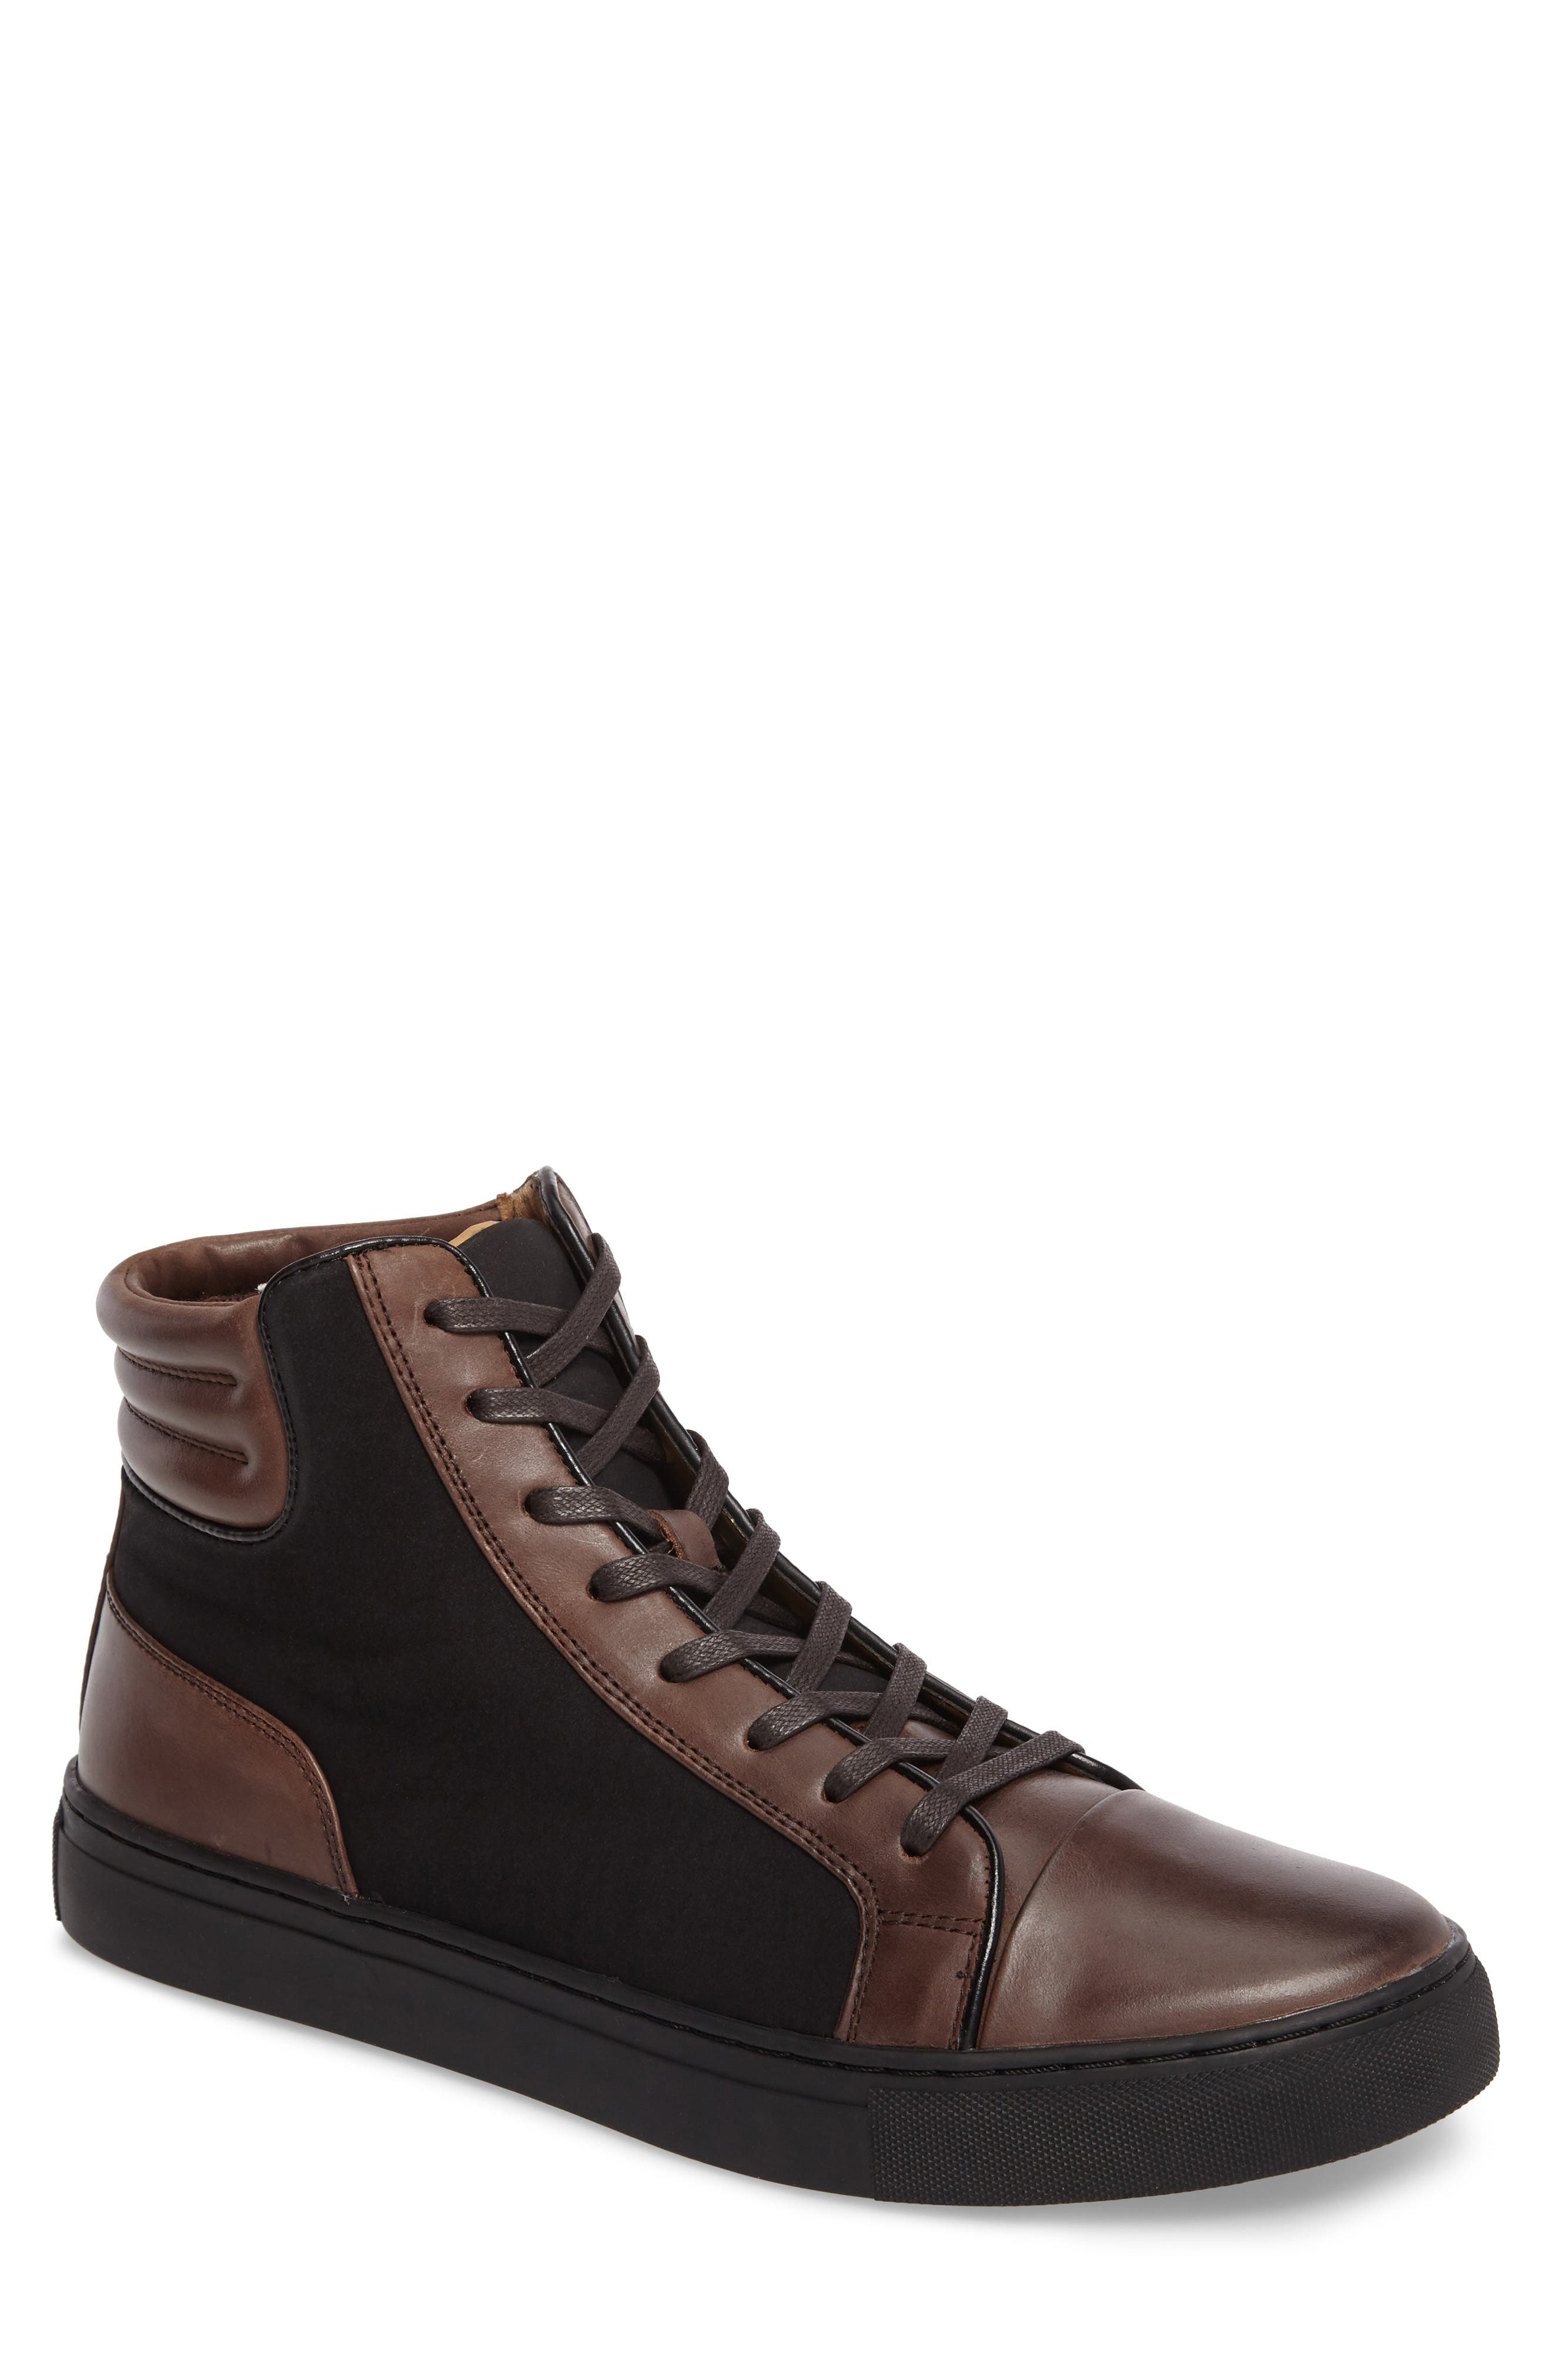 Kenneth Cole Reaction Sneaker,                         Main,                         color,